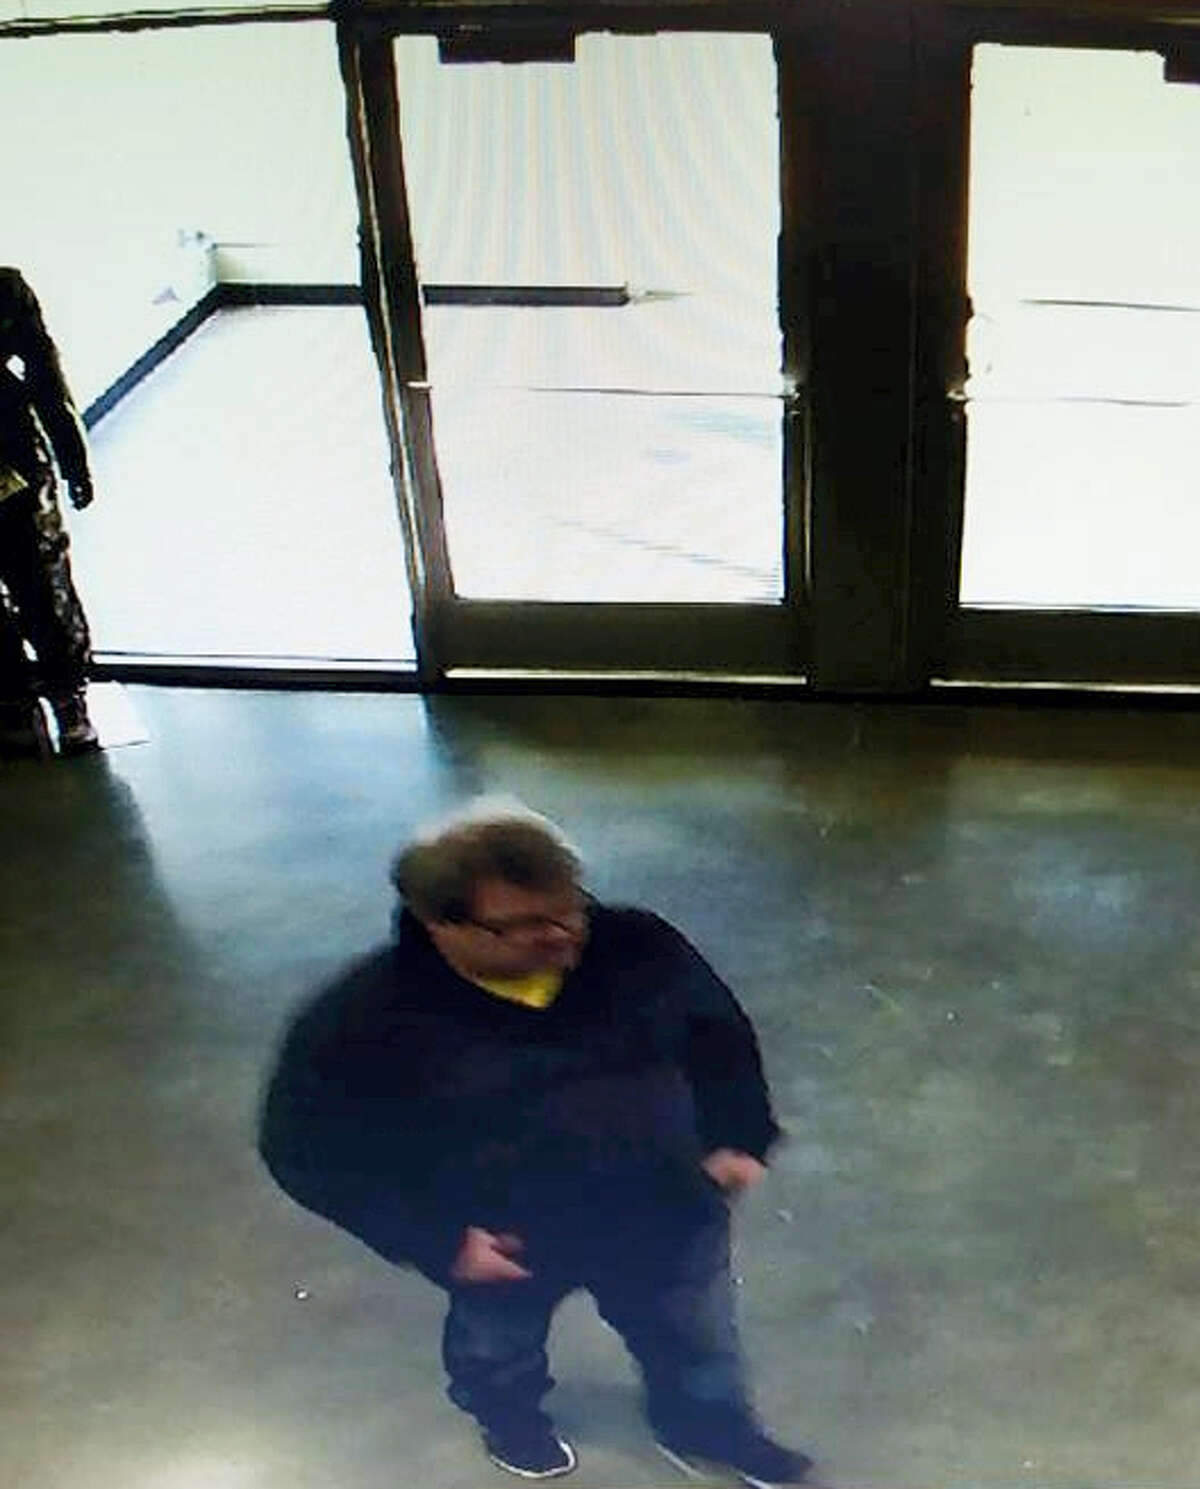 In this Saturday, Feb. 20, 2016 photo provided by Southwick's gun store, Jason Dalton appears in the gun store in Plainwell, Mich., hours before he went on a shooting rampage. Dalton admitted to gunning down randomly chosen victims in and around Kalamazoo, Mich., — attacks apparently carried out over hours during which he also ferried passengers around town as an Uber driver.